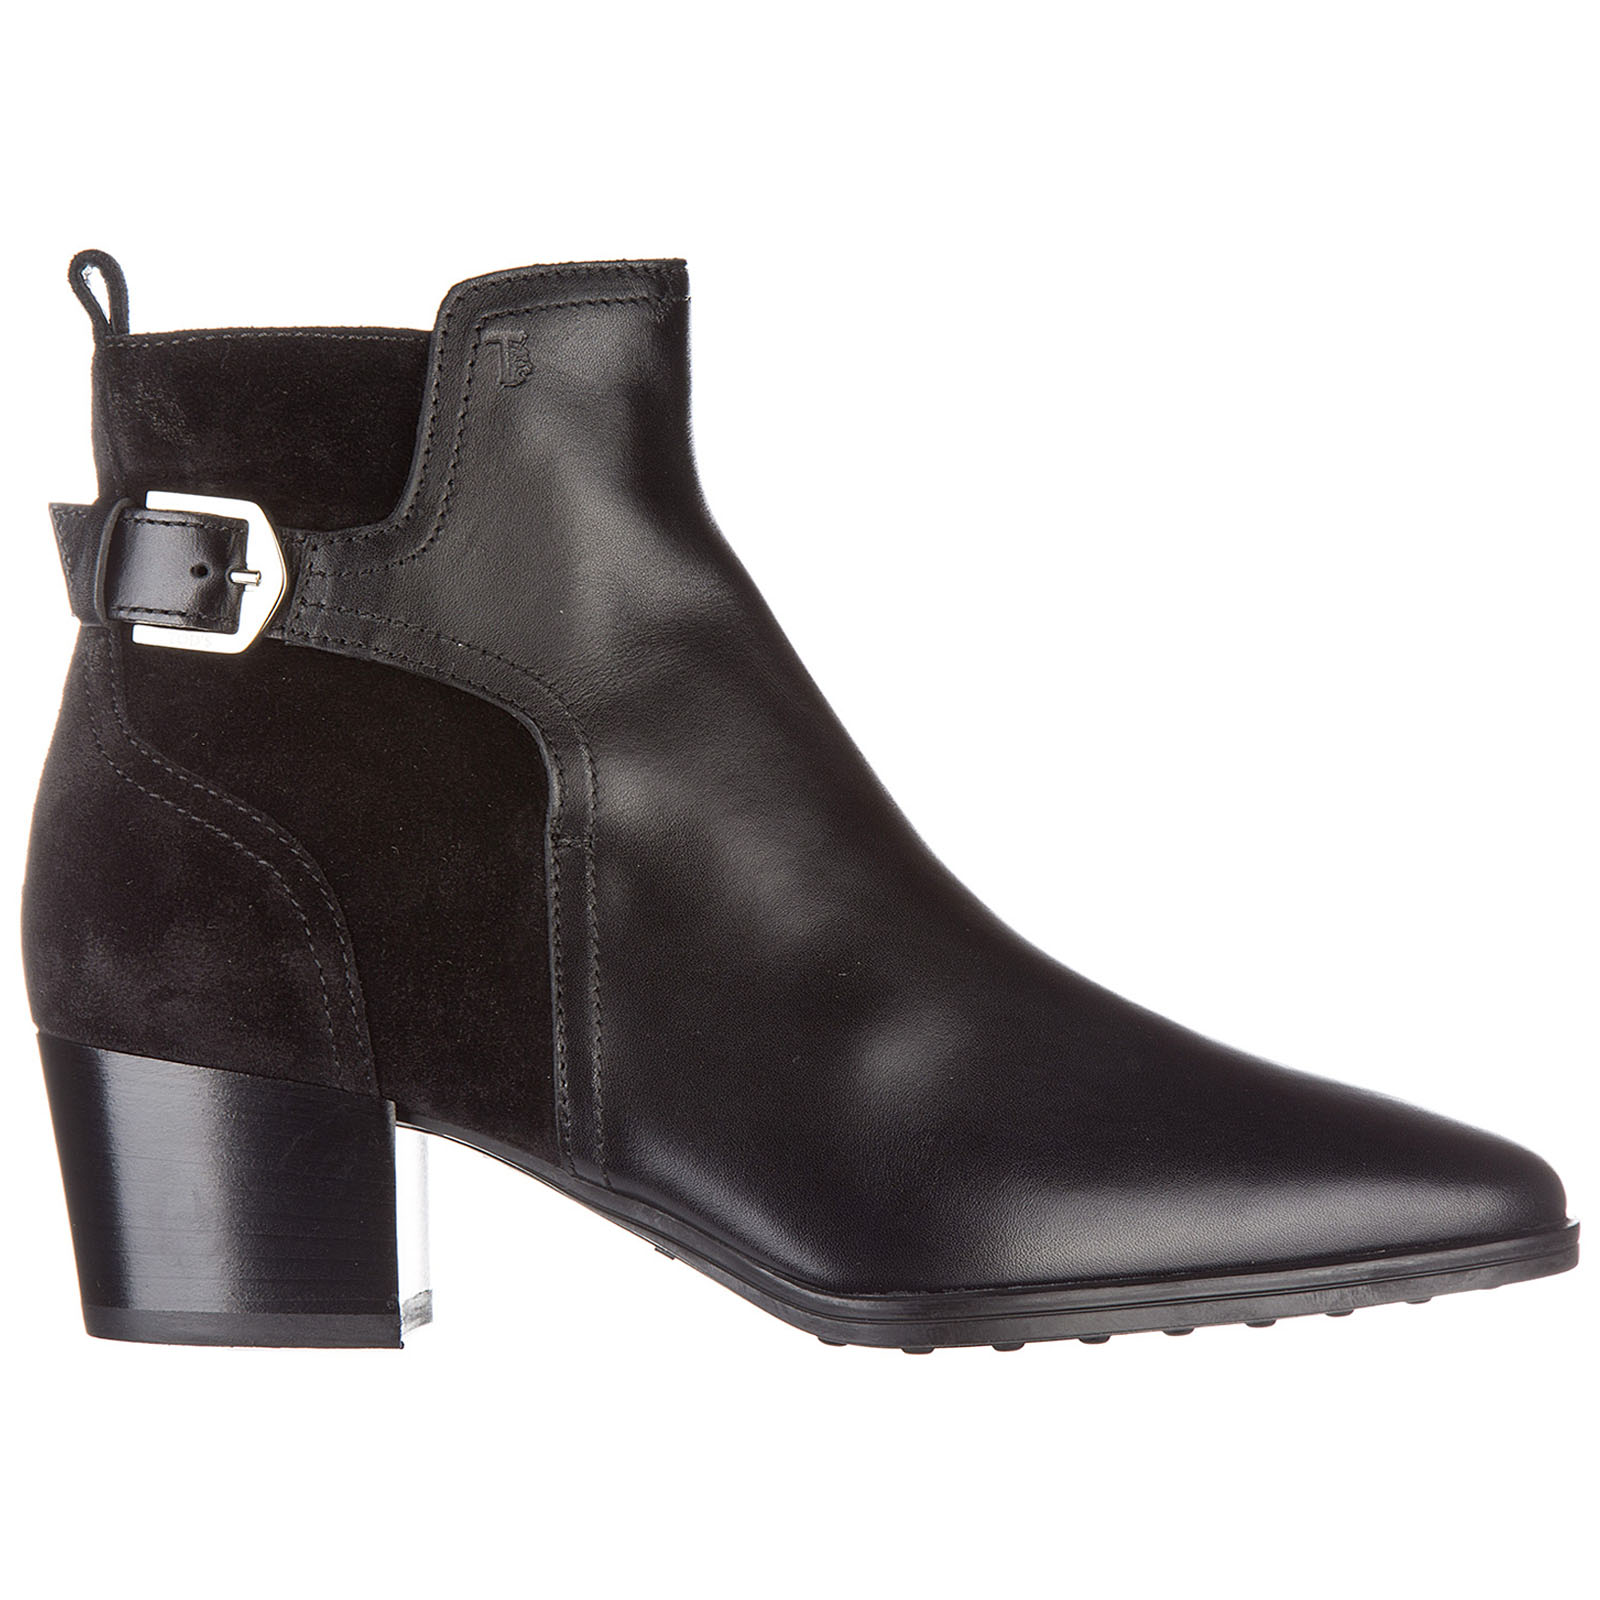 Women's leather heel ankle boots booties tronchetto